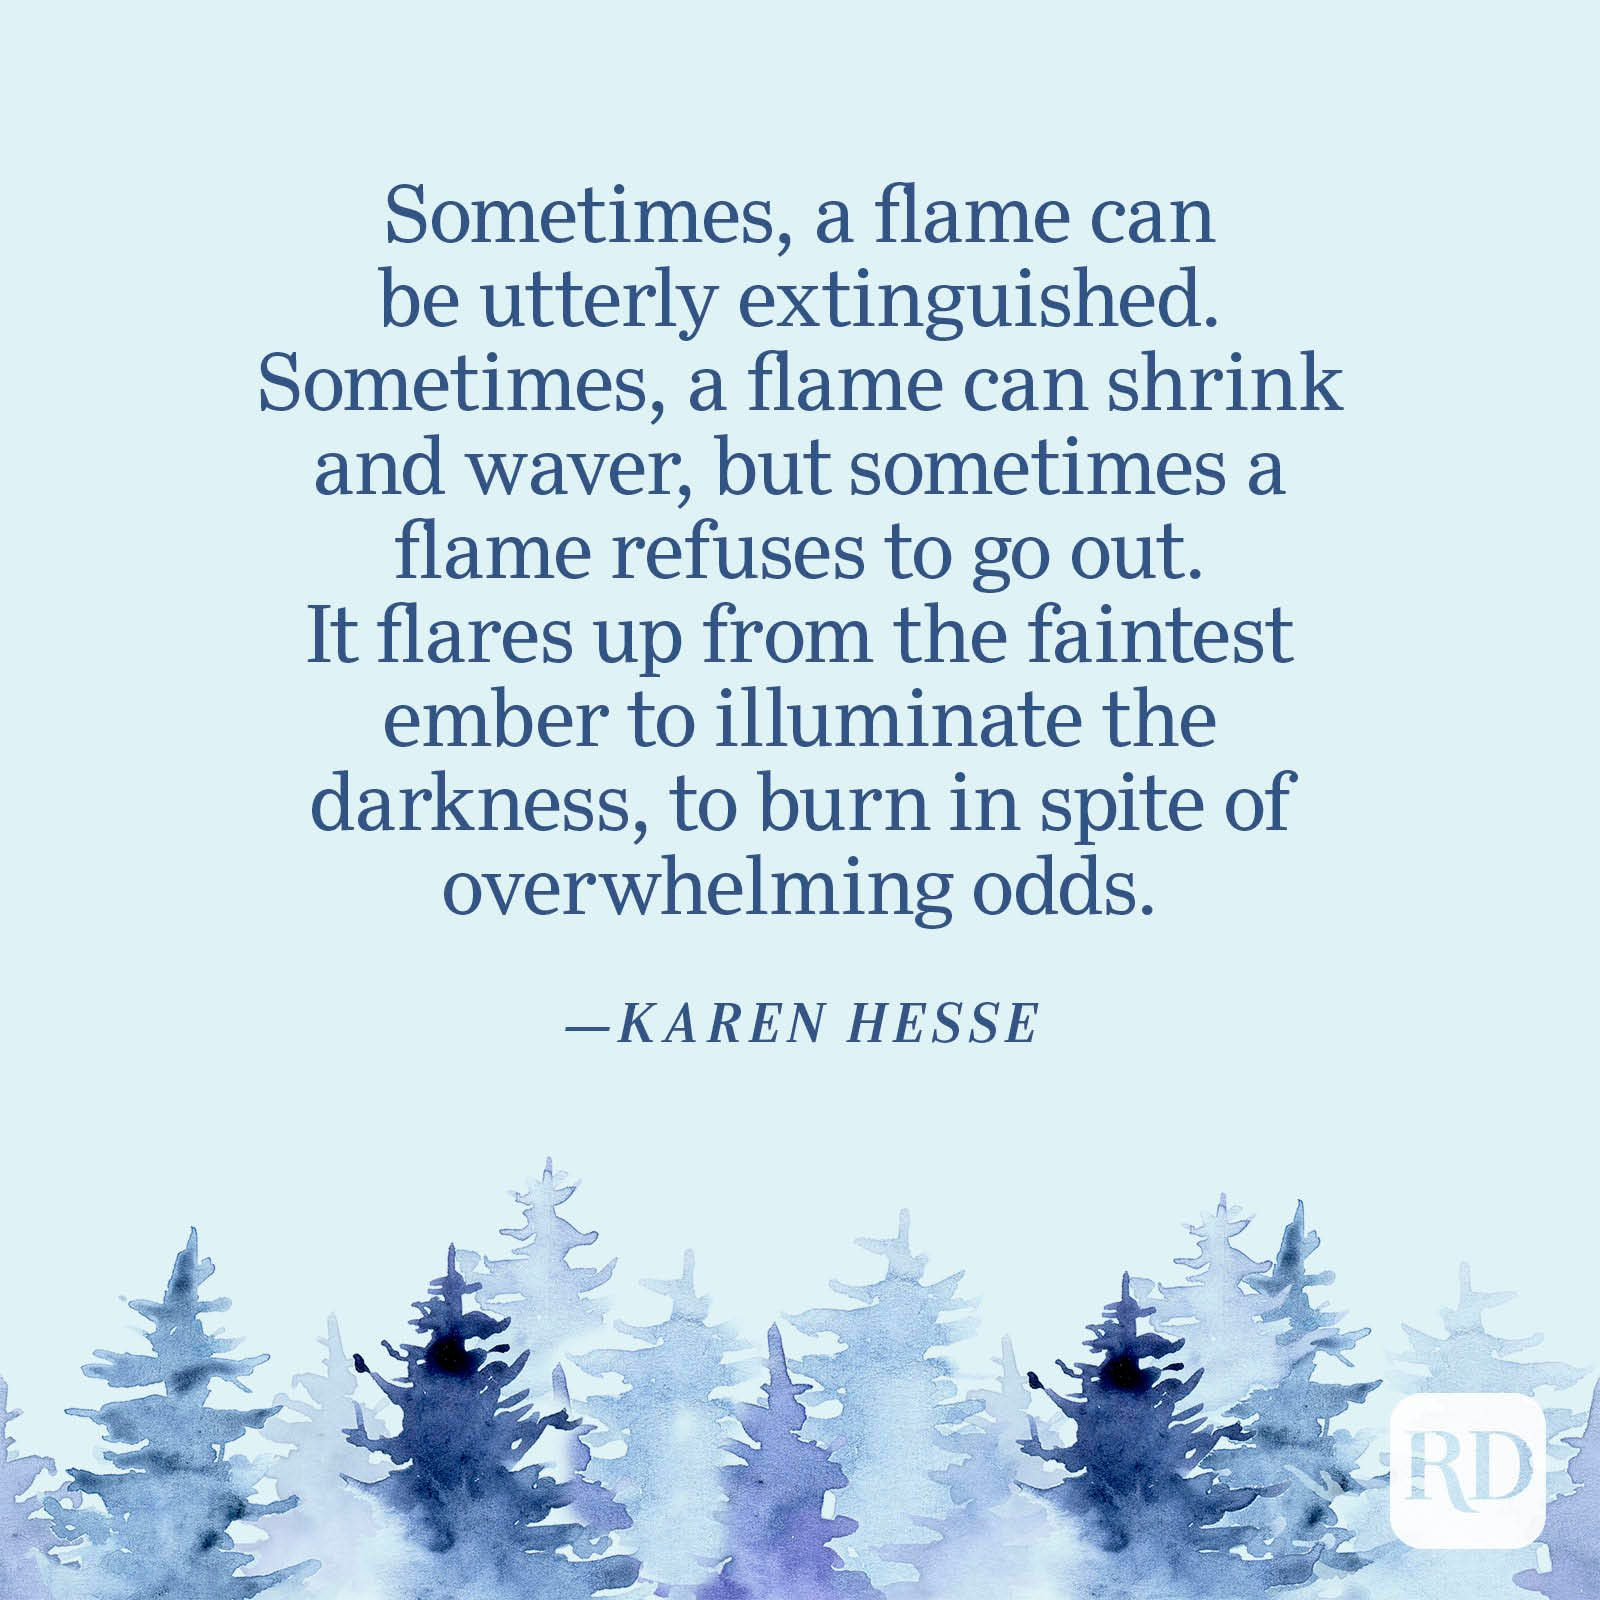 """""""Sometimes, a flame can be utterly extinguished. Sometimes, a flame can shrink and waver, but sometimes a flame refuses to go out. It flares up from the faintest ember to illuminate the darkness, to burn in spite of overwhelming odds."""" —Karen Hesse"""